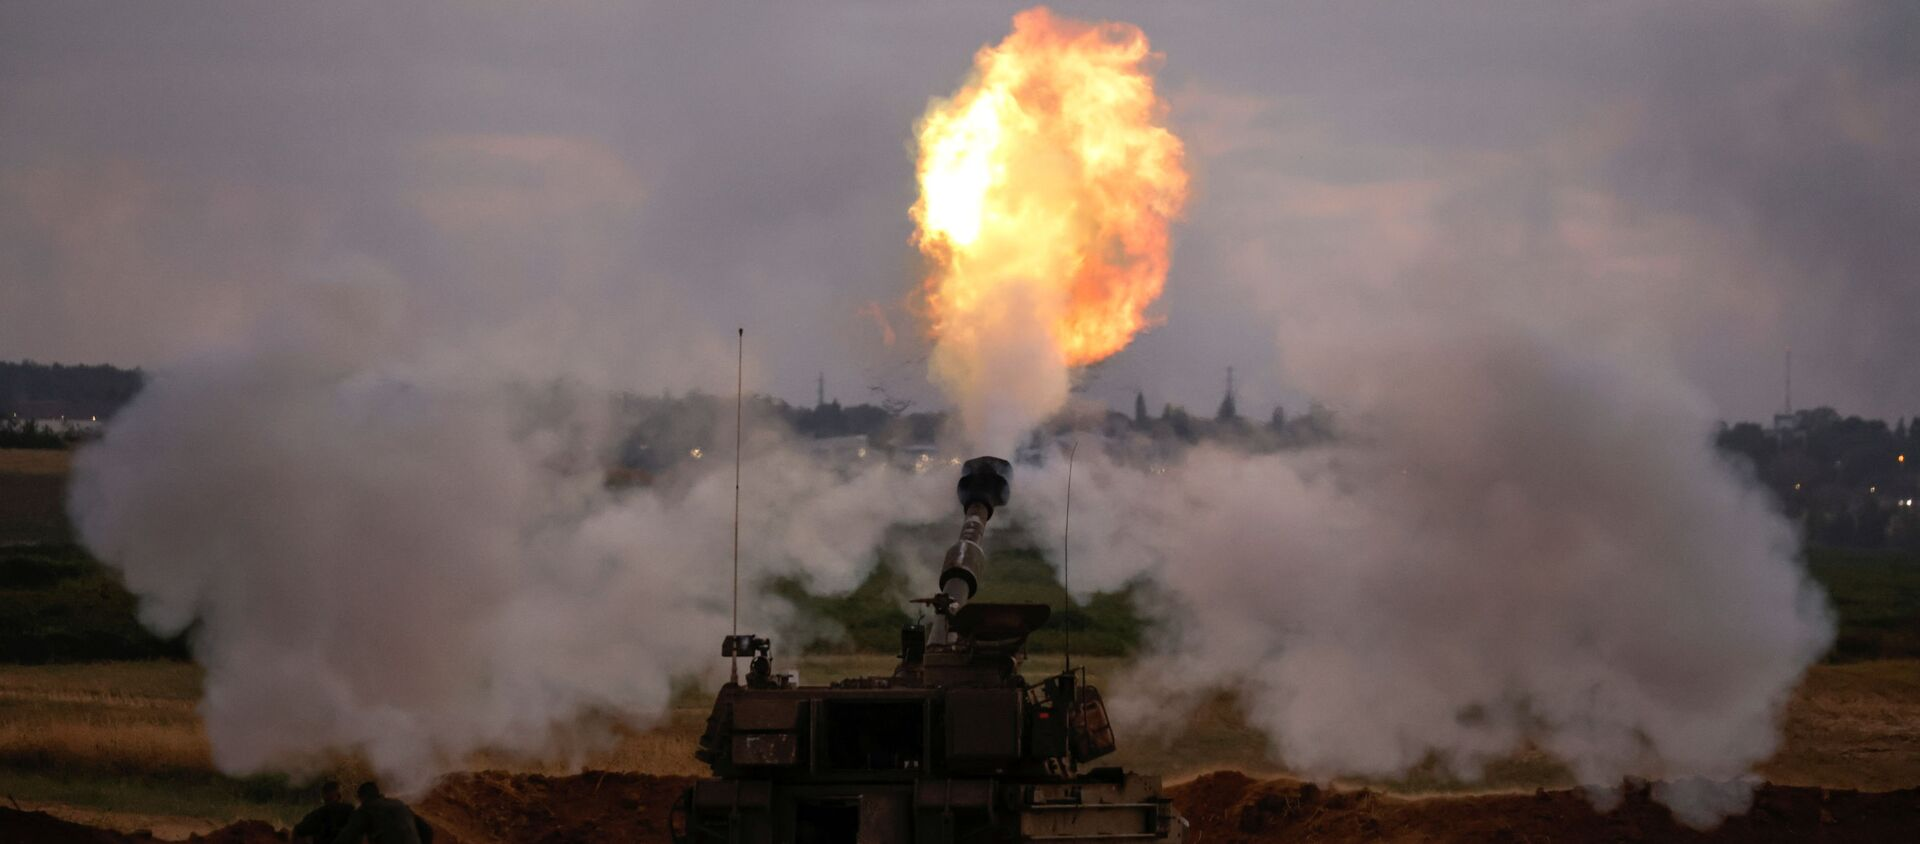 Israeli soldiers work at an artillery unit as it fires near the border between Israel and the Gaza strip, on the Israeli side May 17, 2021 - Sputnik International, 1920, 04.06.2021